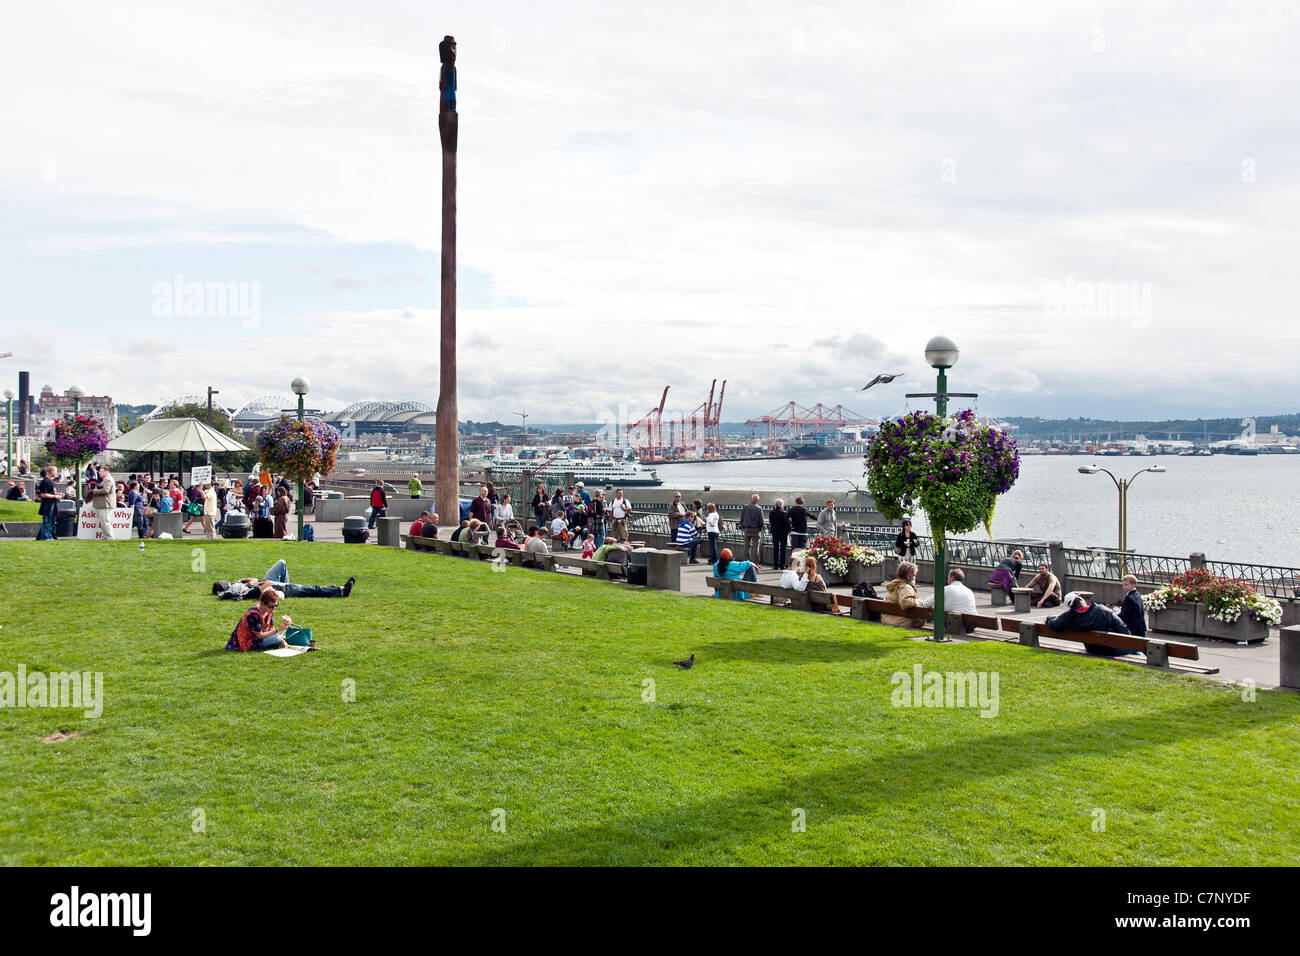 people enjoy raised lawn & esplanade seating with superb view of Elliott Bay & Port of Seattle in Victor - Stock Image